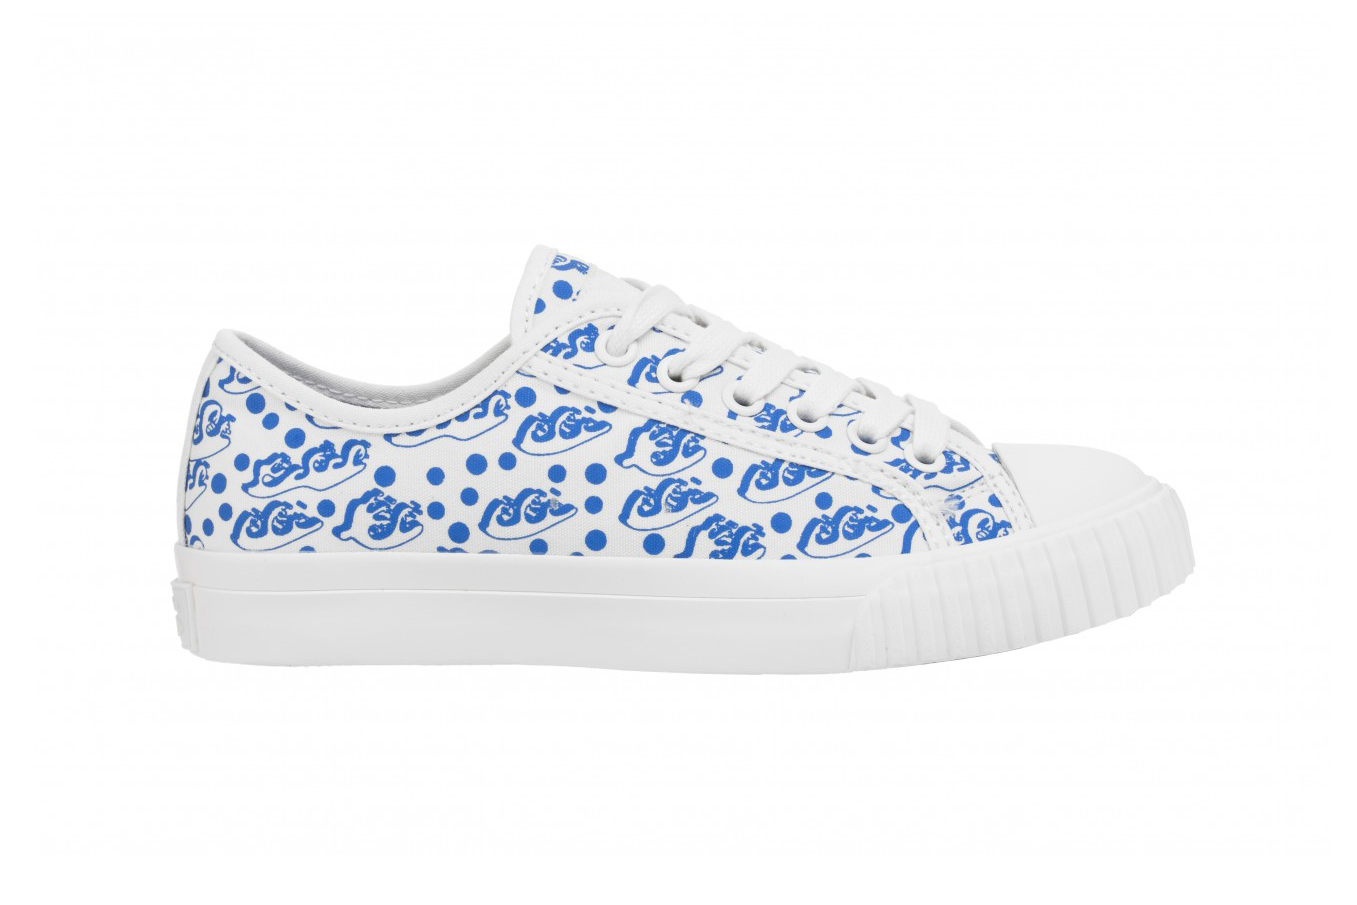 Julien David and colette Team up for Limited Edition Low-Top Sneaker With Bata